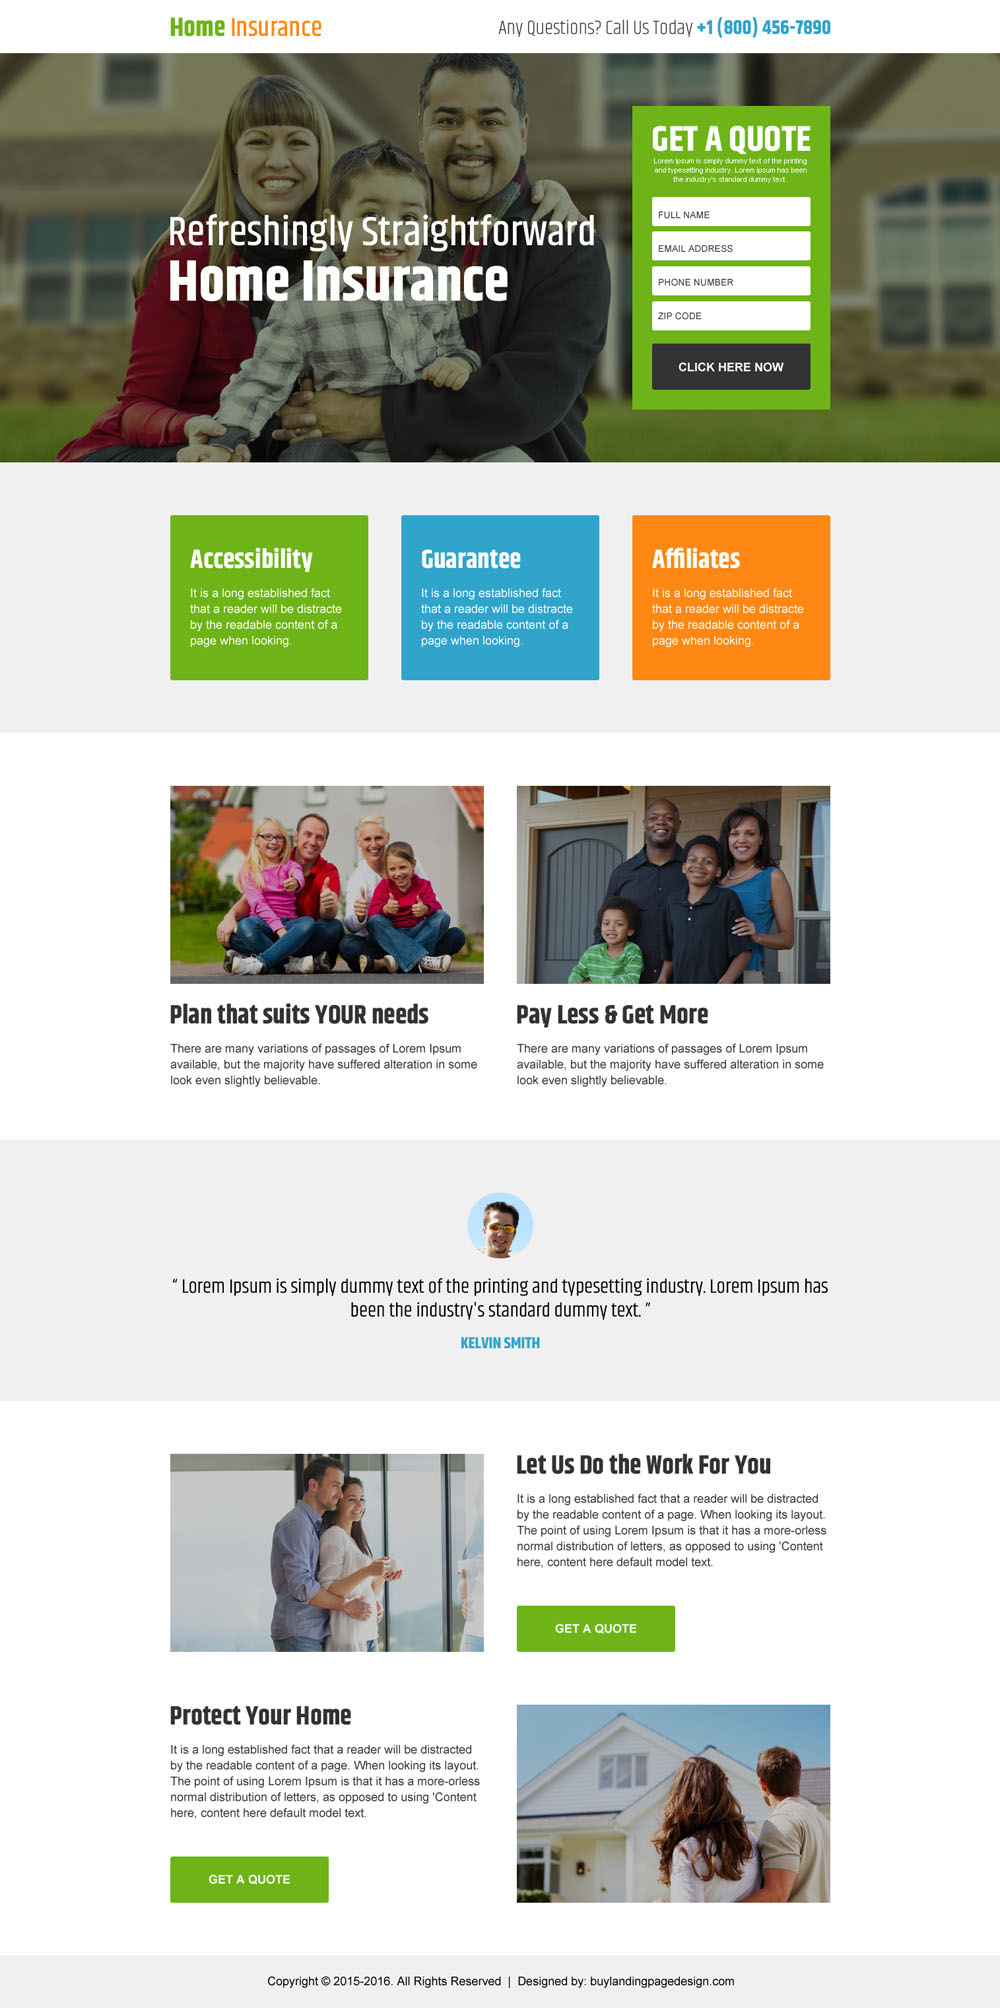 home-insurance-free-quote-lead-generation-high-converting-landing-page-design-026